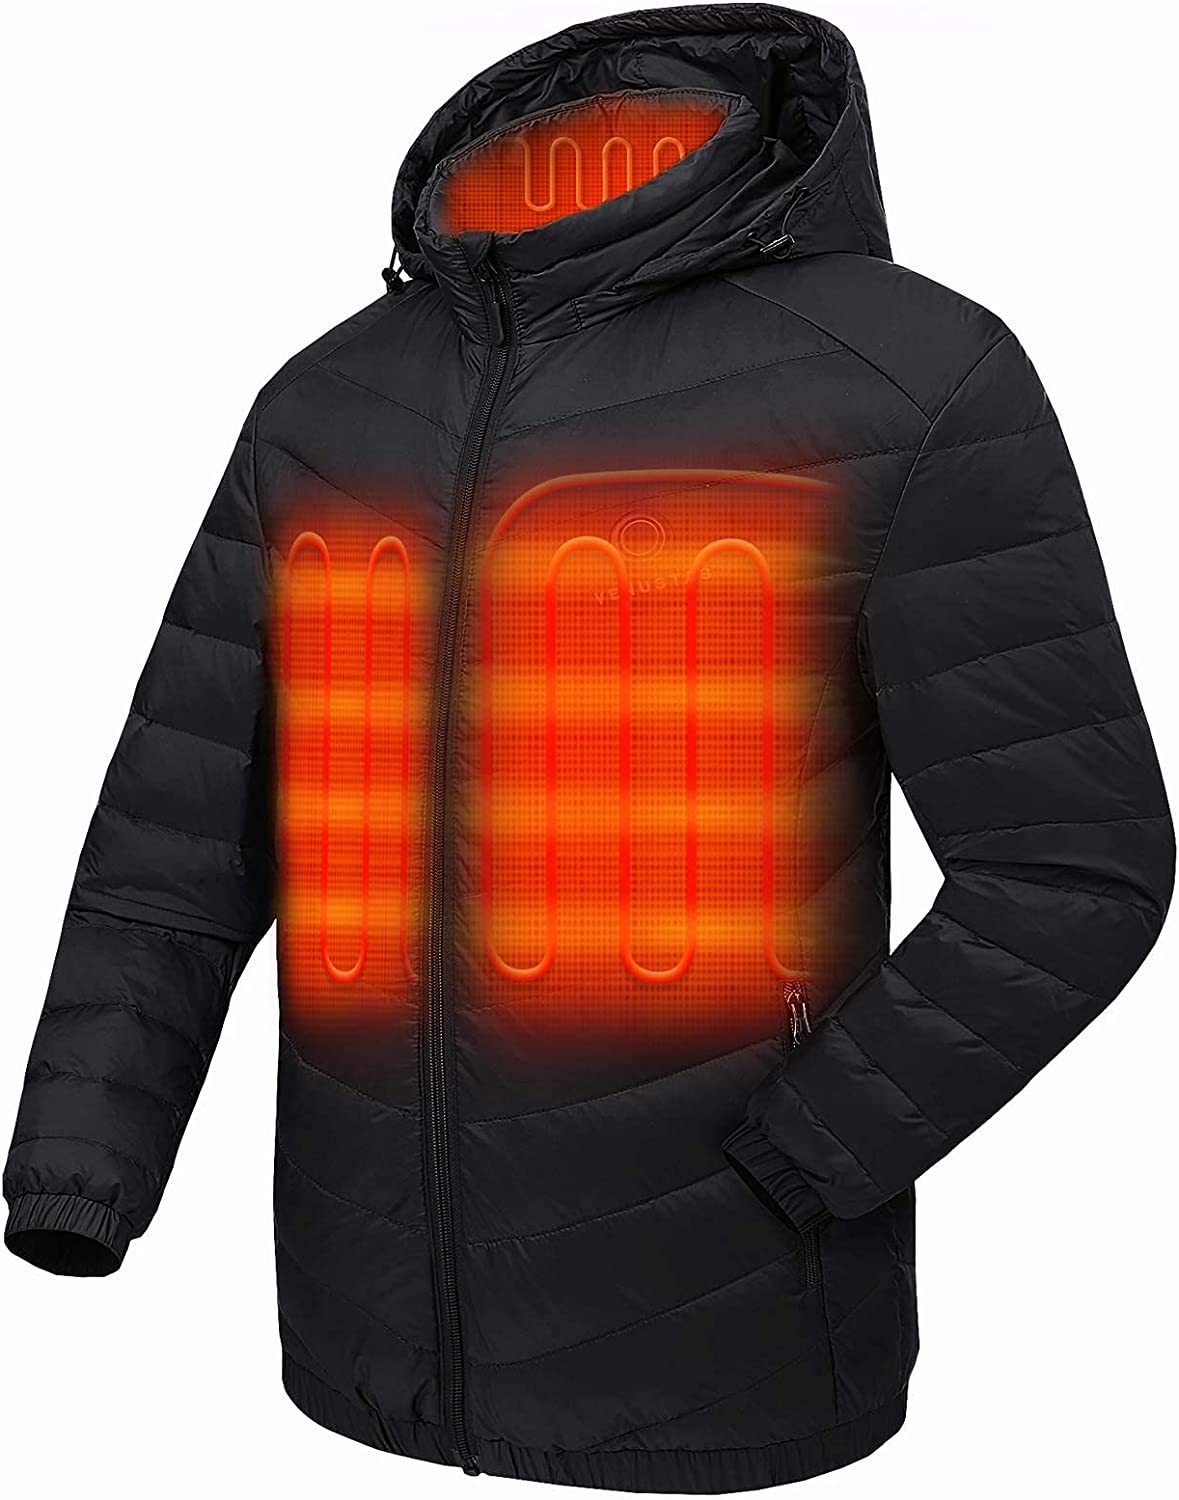 Venustas Men's Down Heated Jacket with Battery Pack 7.4V and Detachable Hood